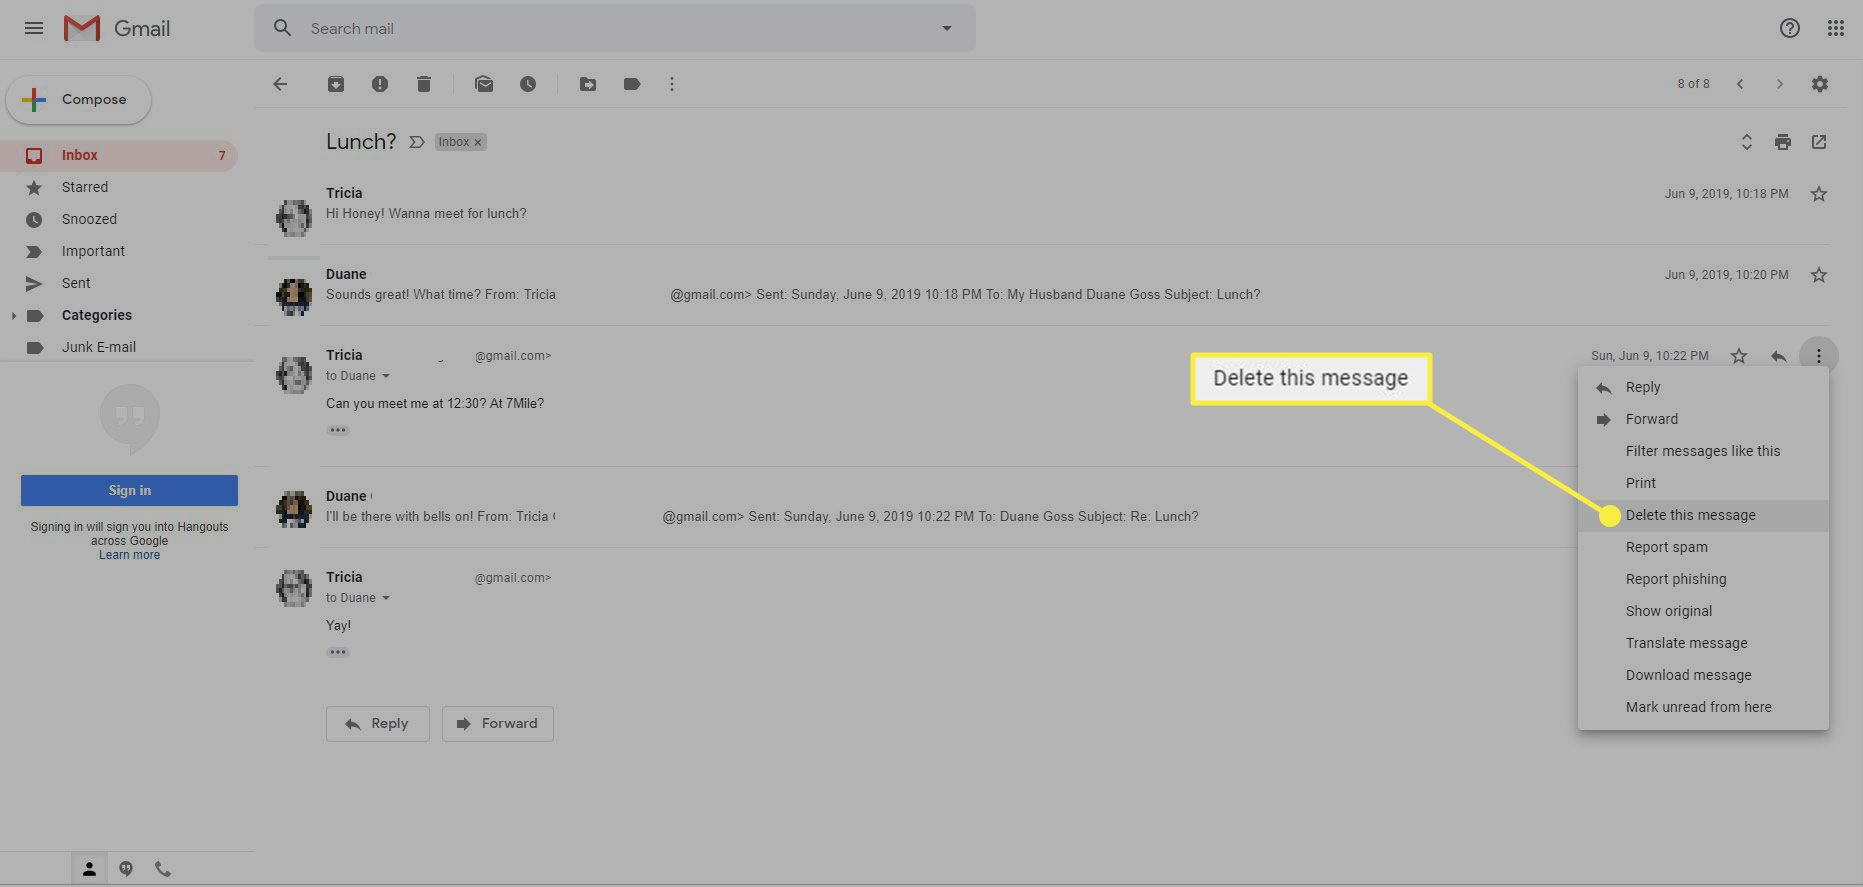 Gmail with the Delete this Message command highlighted